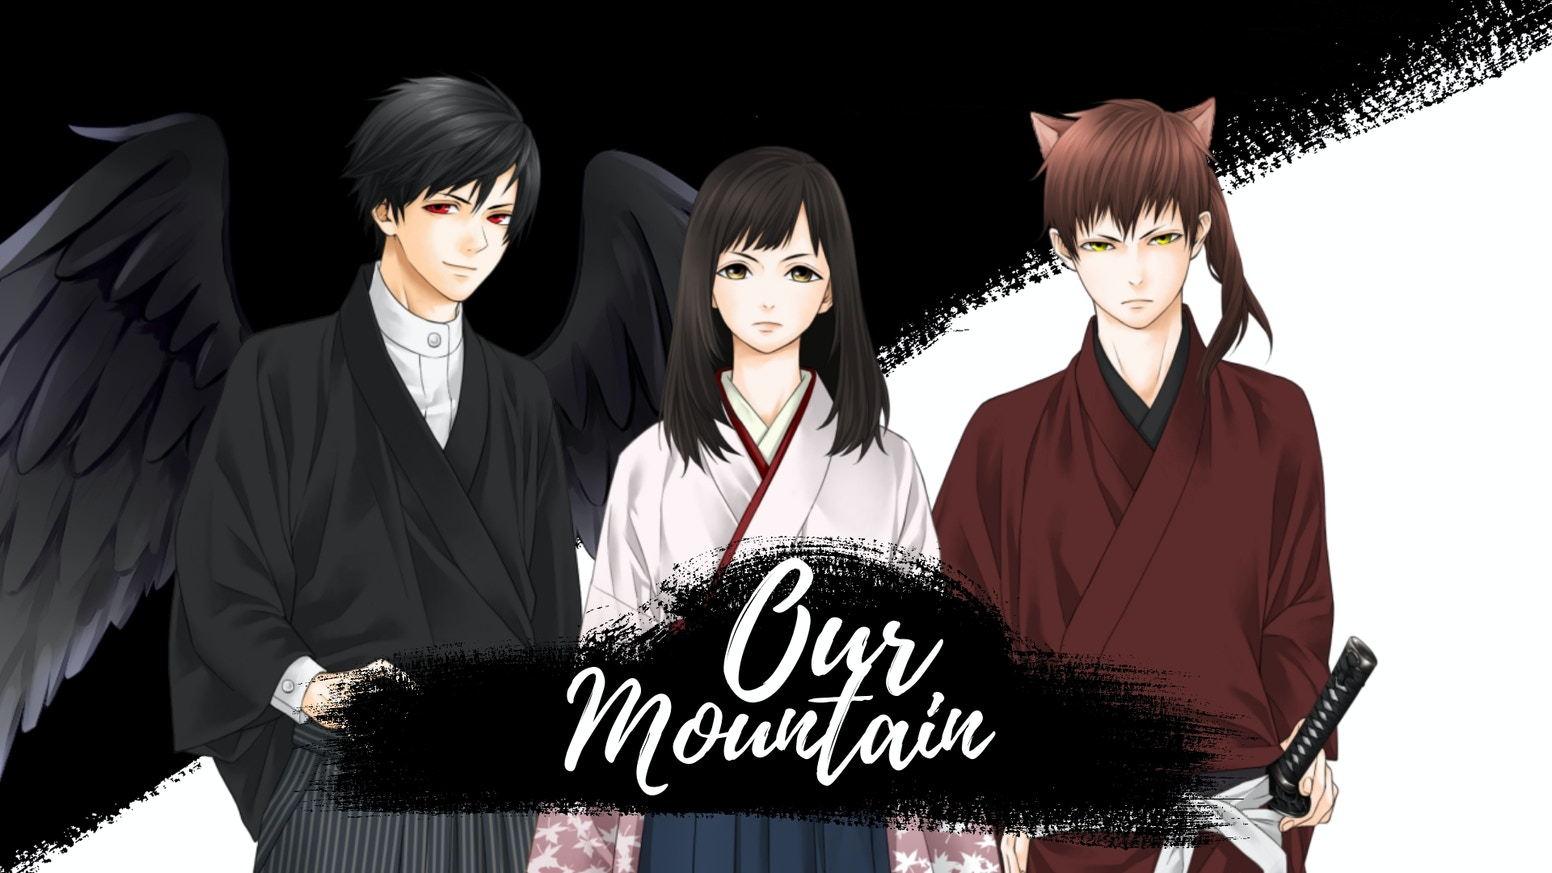 A fantasy visual novel set in ancient Japan.